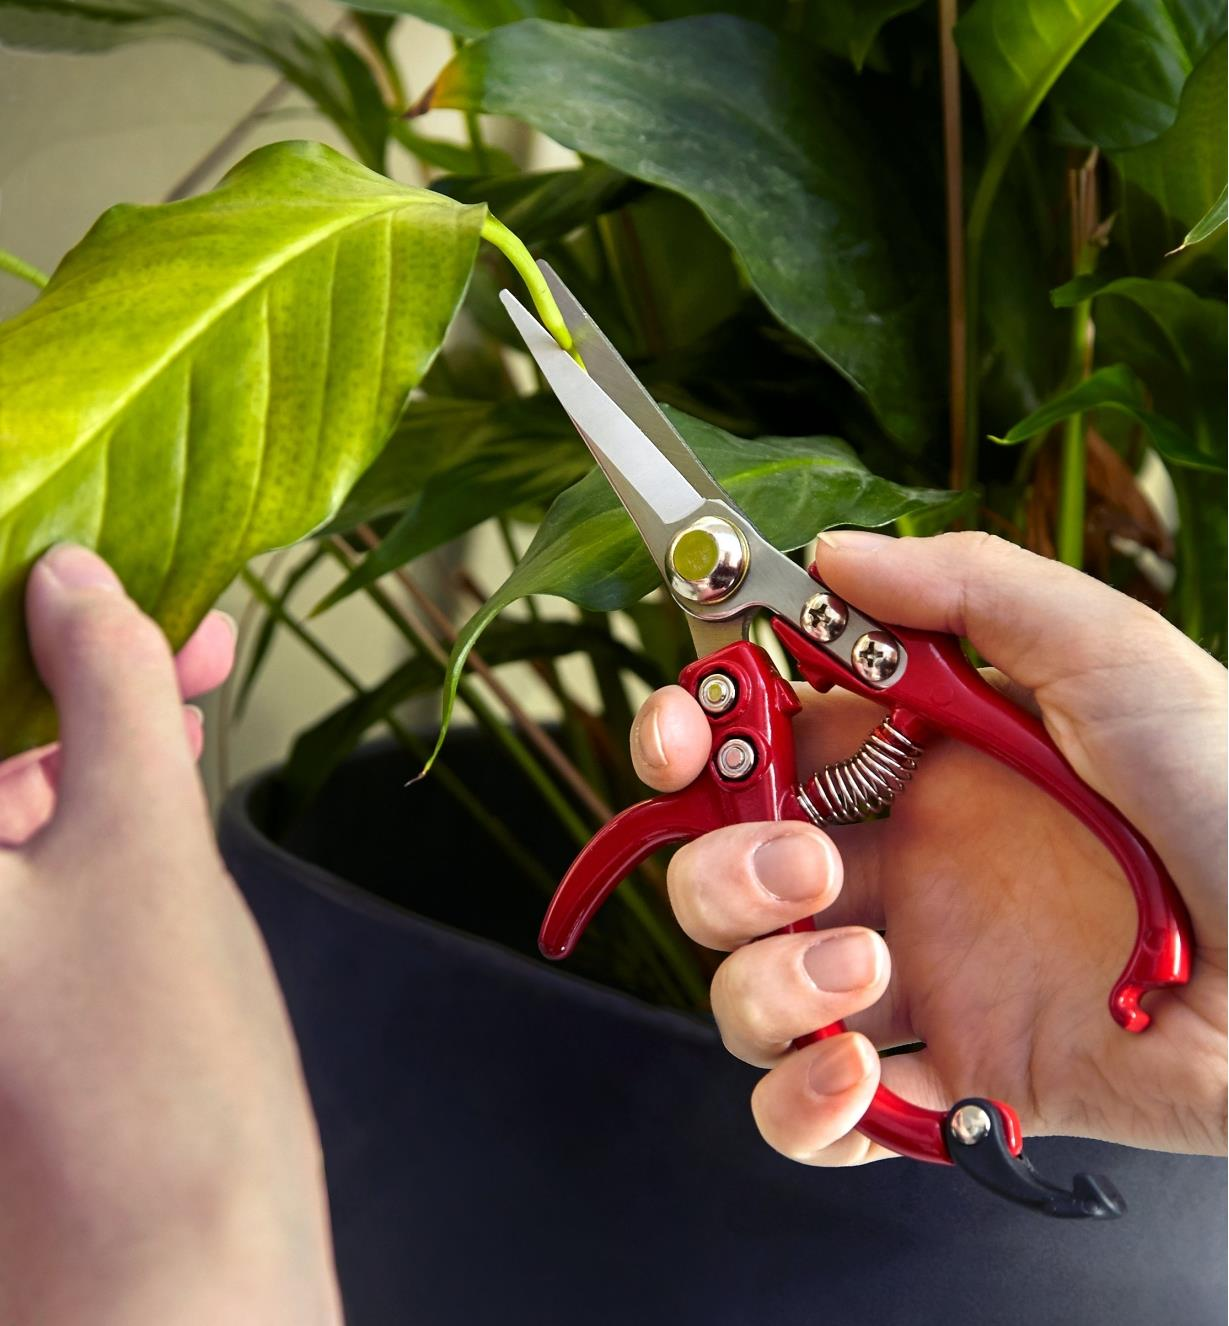 AB379 - Set of 2 Mini Garden Shears